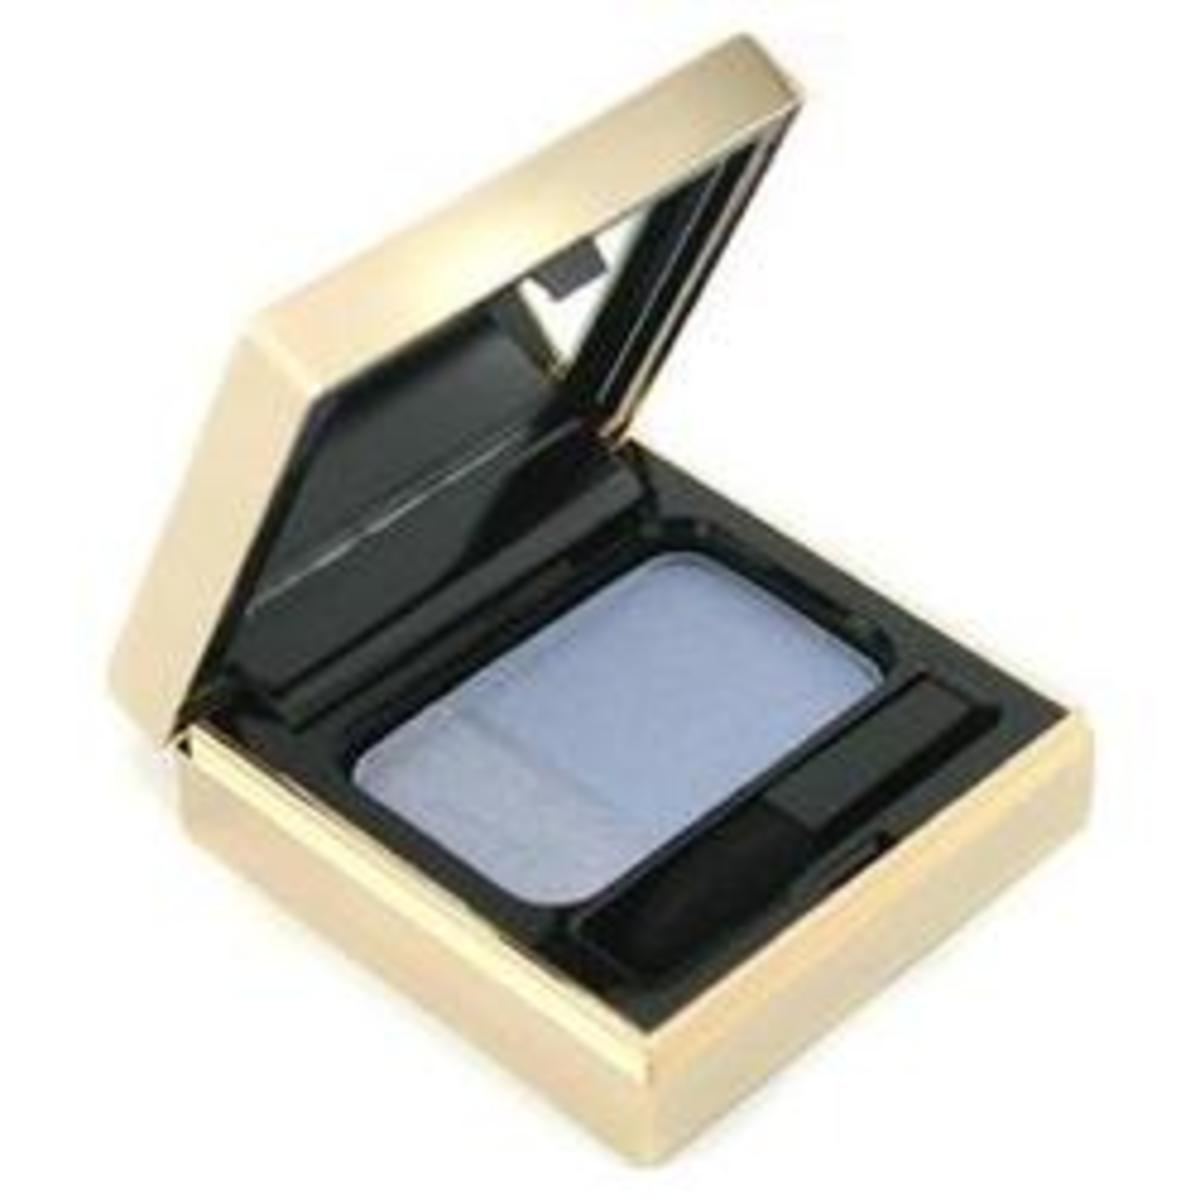 YLS-Ombre-Solo-Eyeshadow-in-10